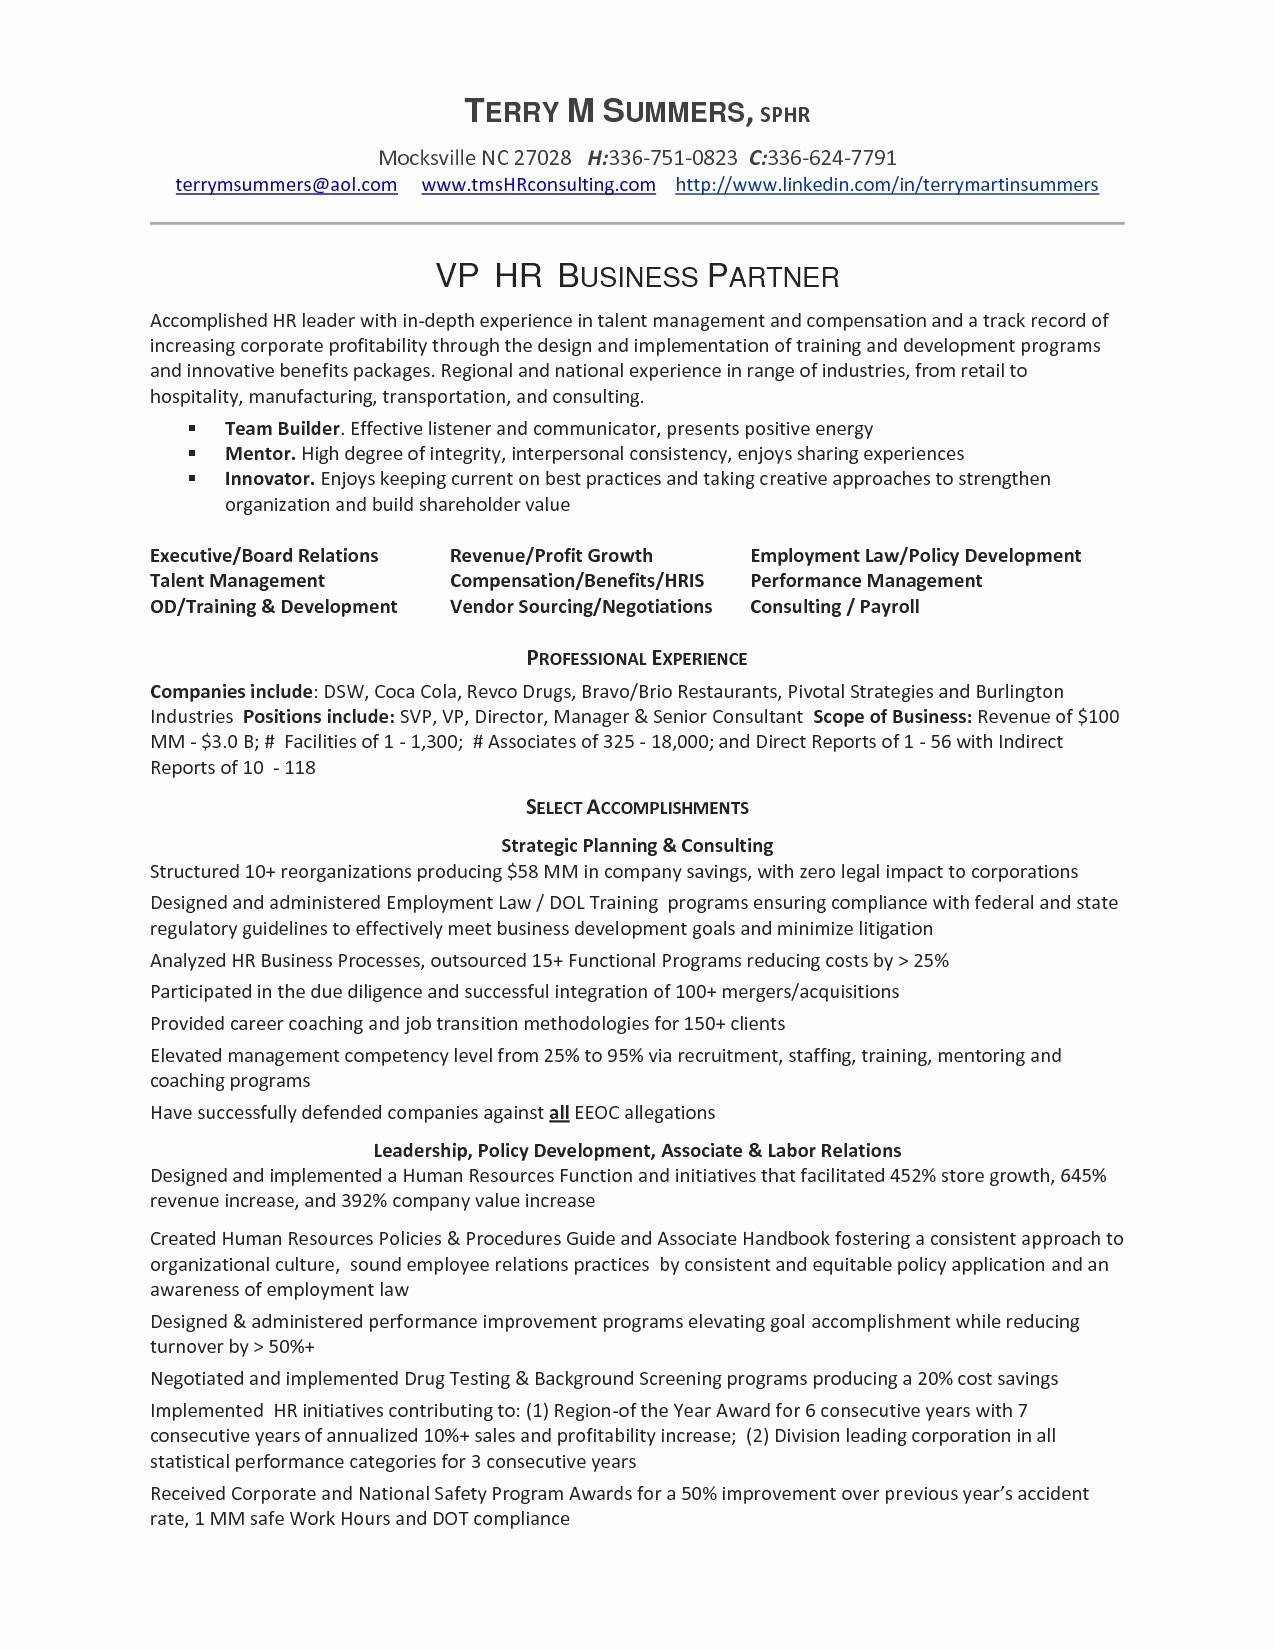 Physical therapist Resume Template - Physical therapist Resume Template Save Physical therapist Sample